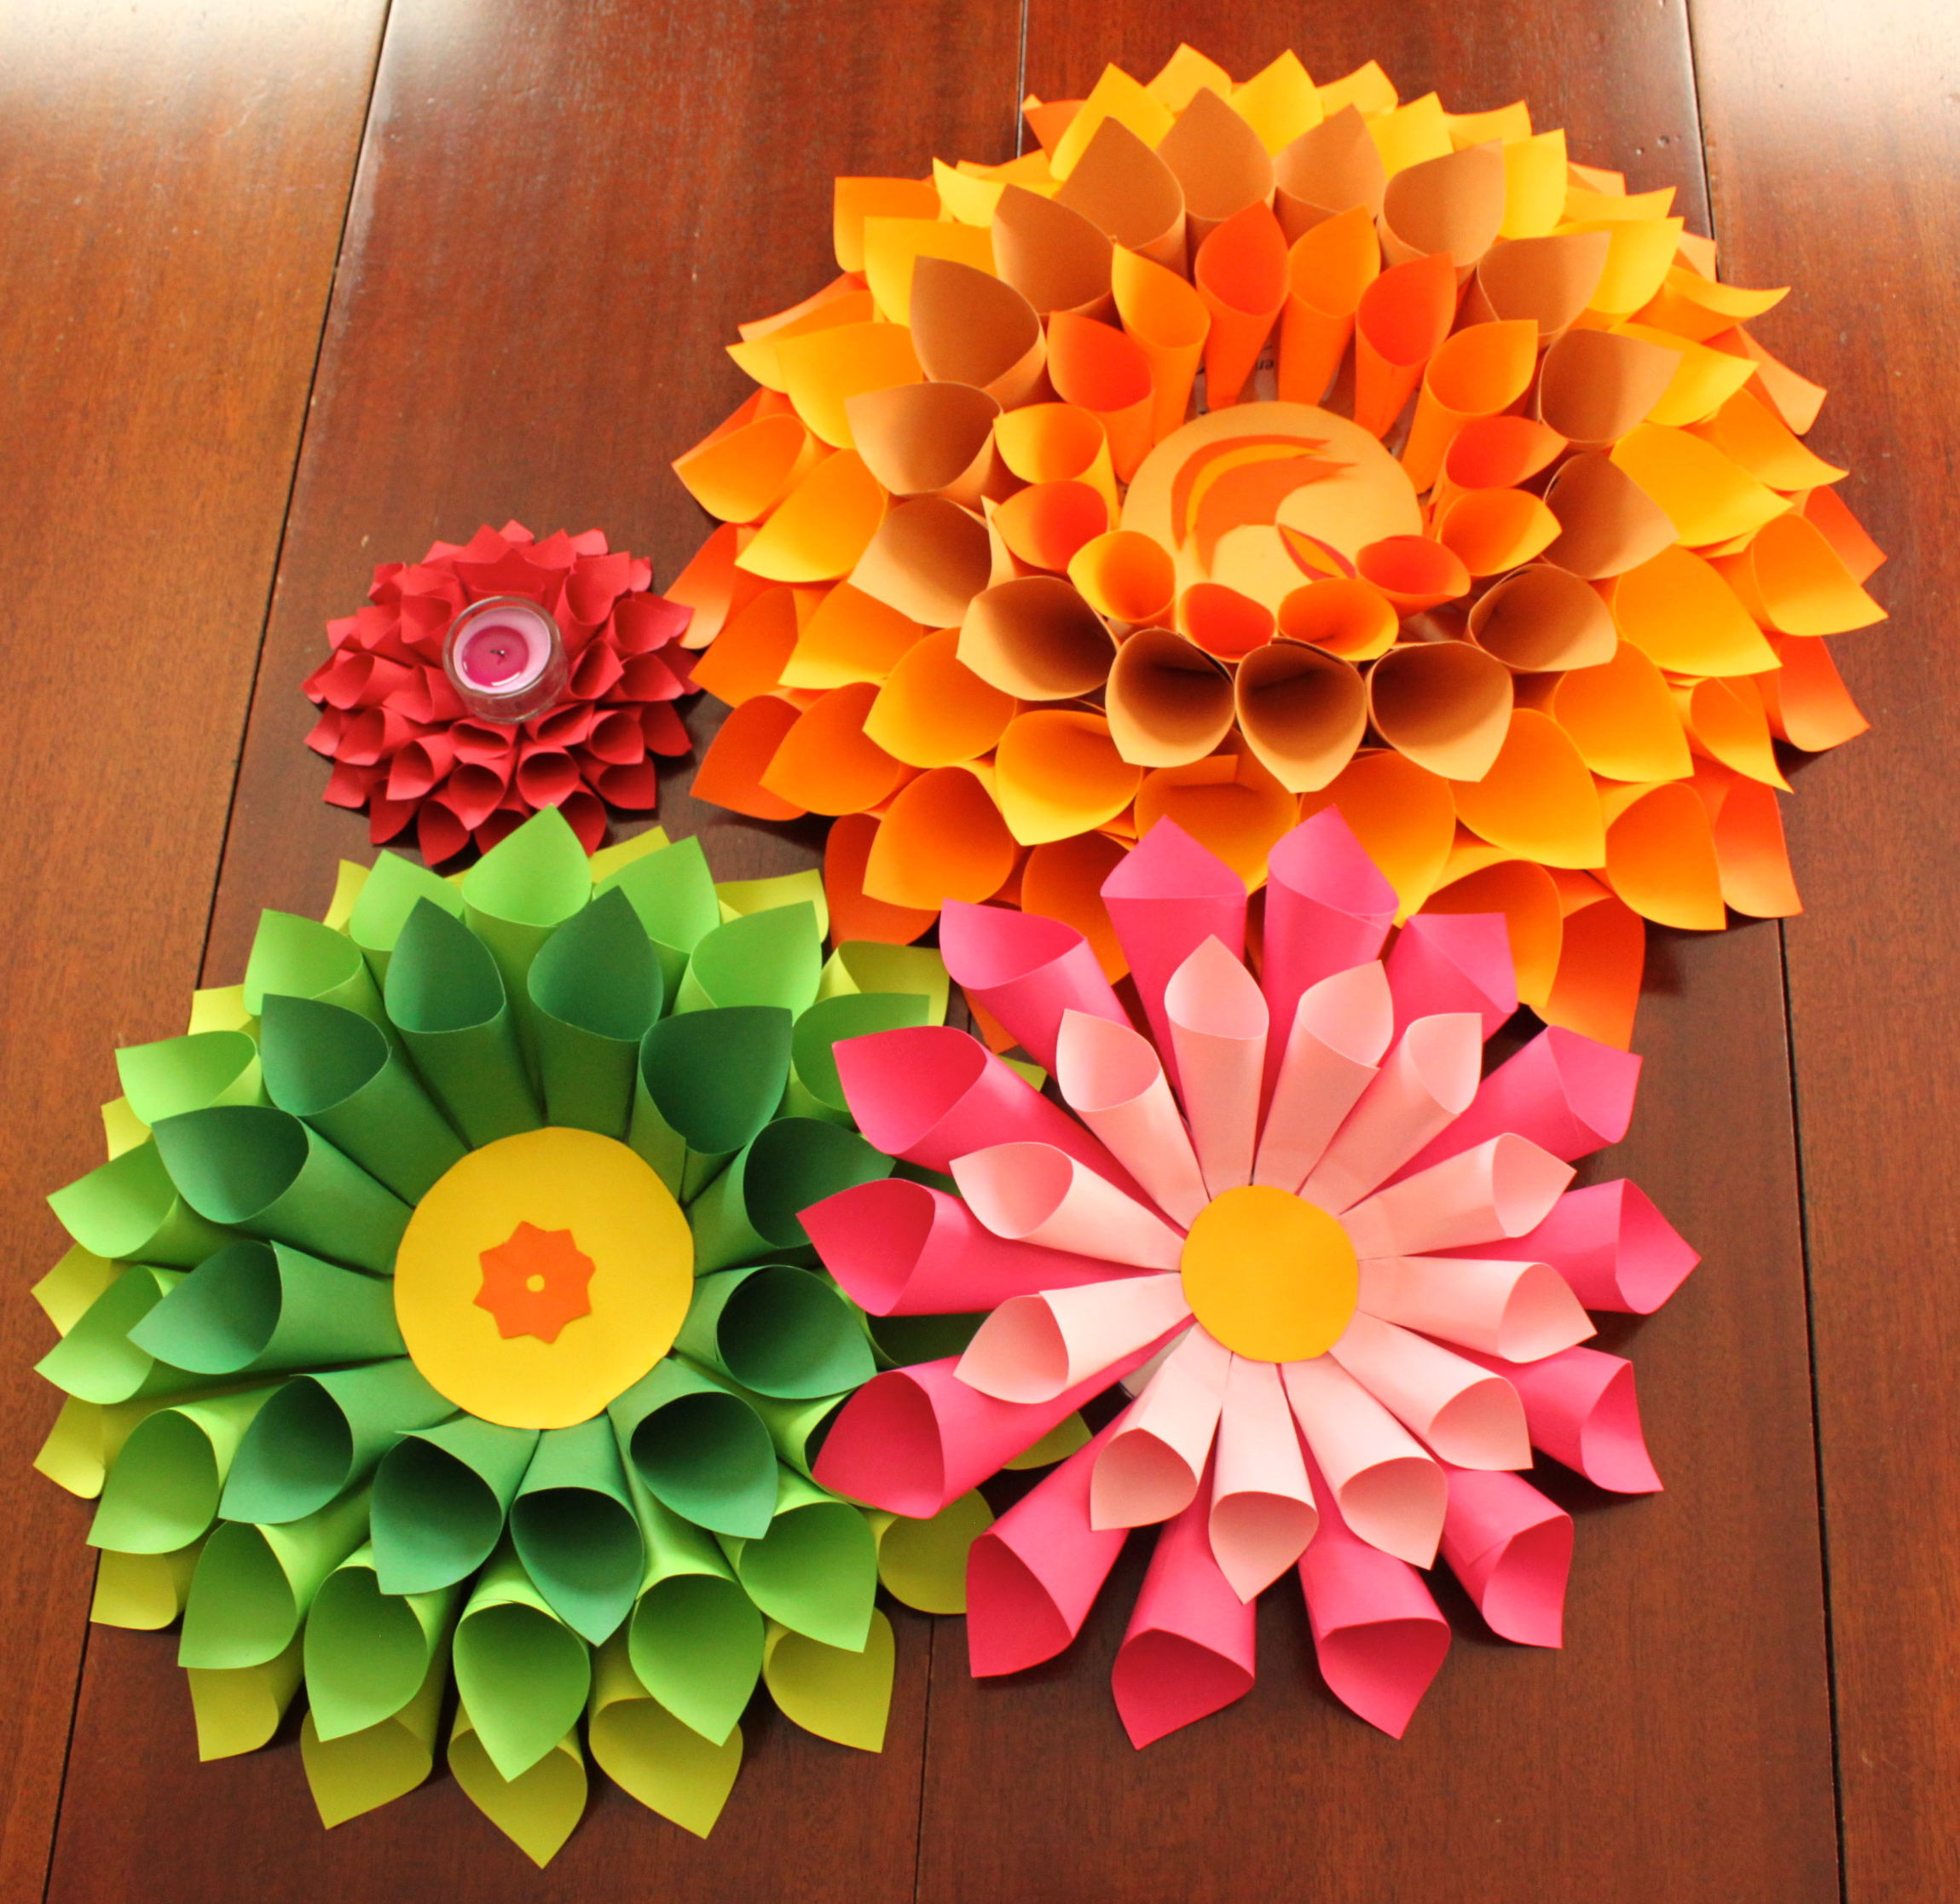 Dramatic dahlia diwali s4 creative me for Decorative flowers for crafts